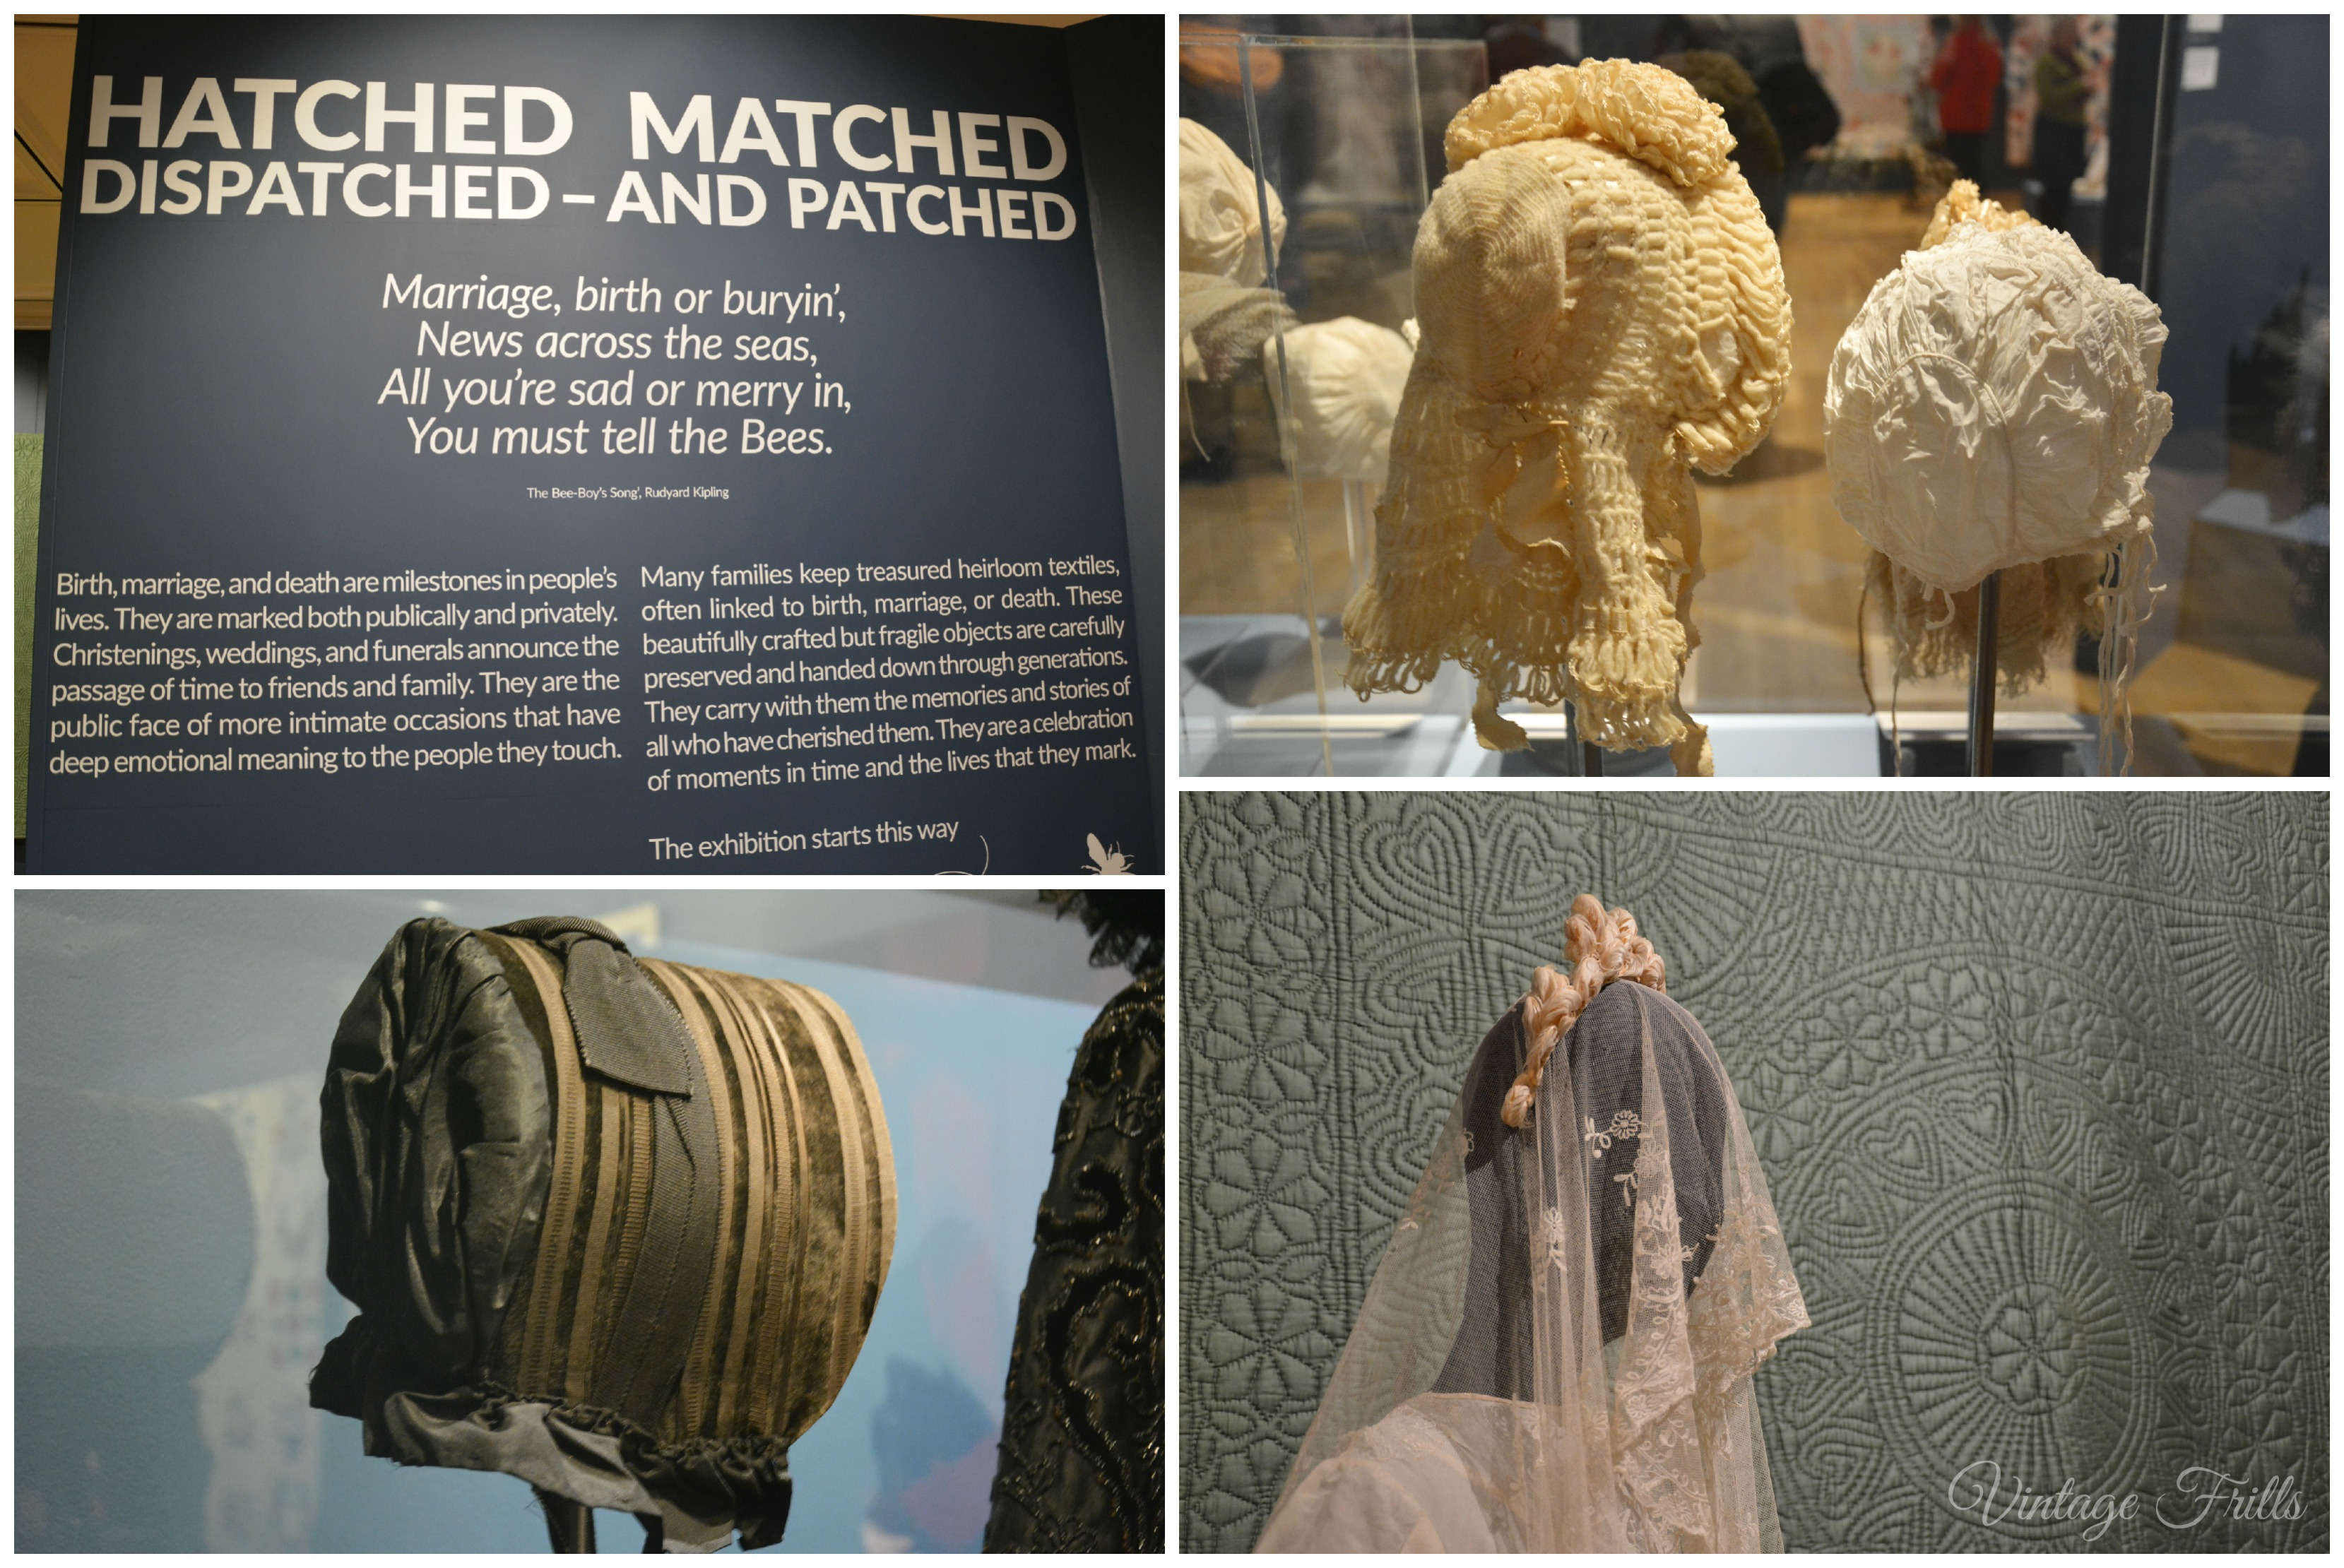 Hatched, Matched, Dispatched – and Patched! At The American Museum in Britain